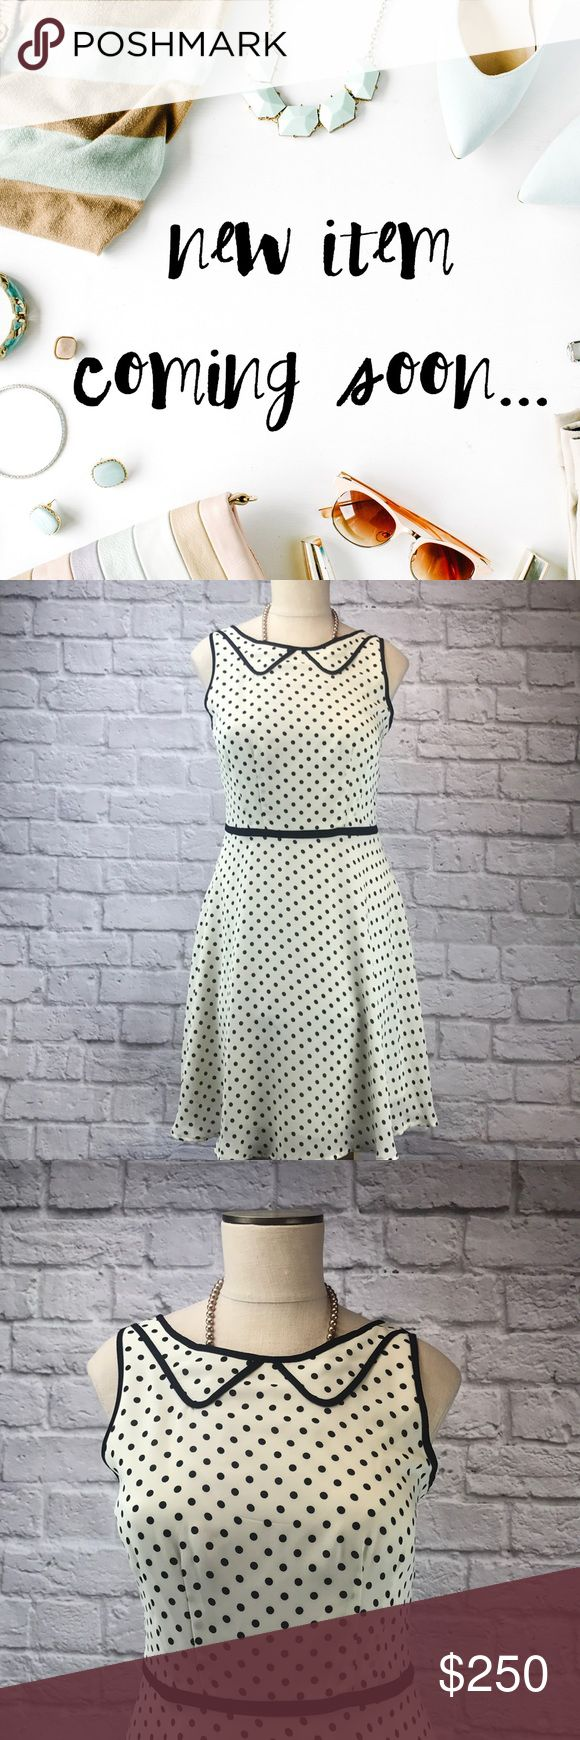 🆕Lauren Conrad Polka Dot Mini Dress Gently worn, LC Lauren Conrad mini dress. Size 10. Cream with black polka dots and black lining along the waist. Approx. Length: 37', Waist: 16'. Please use offer button and bundle for a bigger discount. Thanks 💋 2054-119 LC Lauren Conrad Dresses Mini